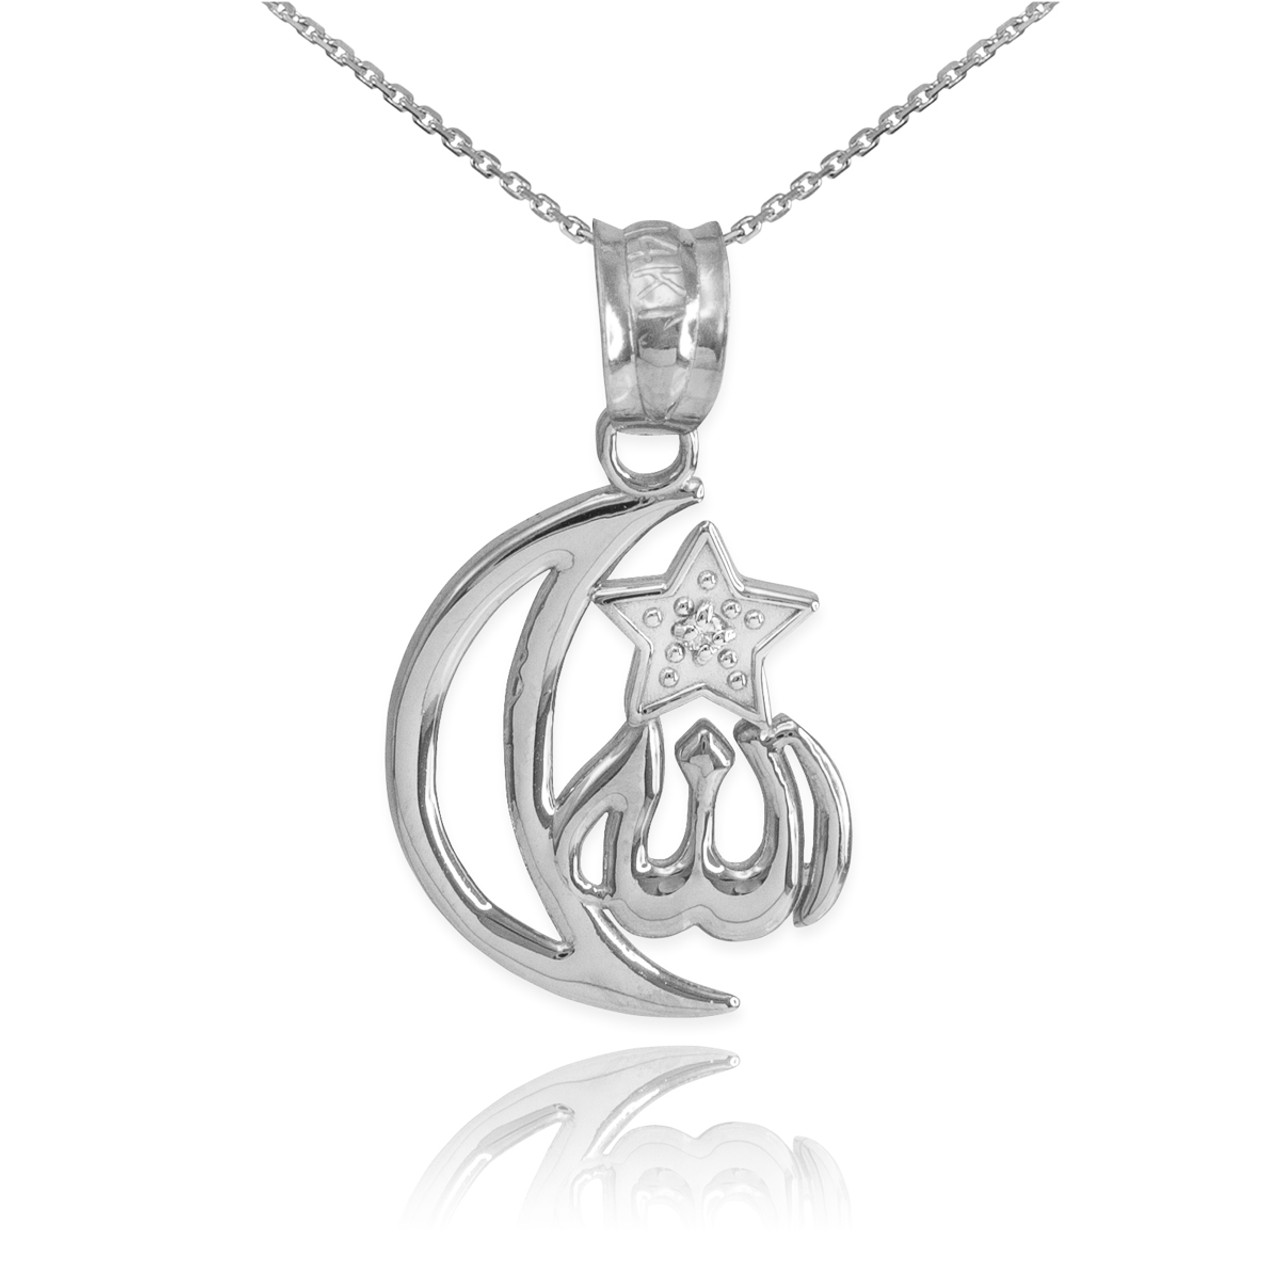 Sterling silver cz crescent moon allah pendant necklace aloadofball Images